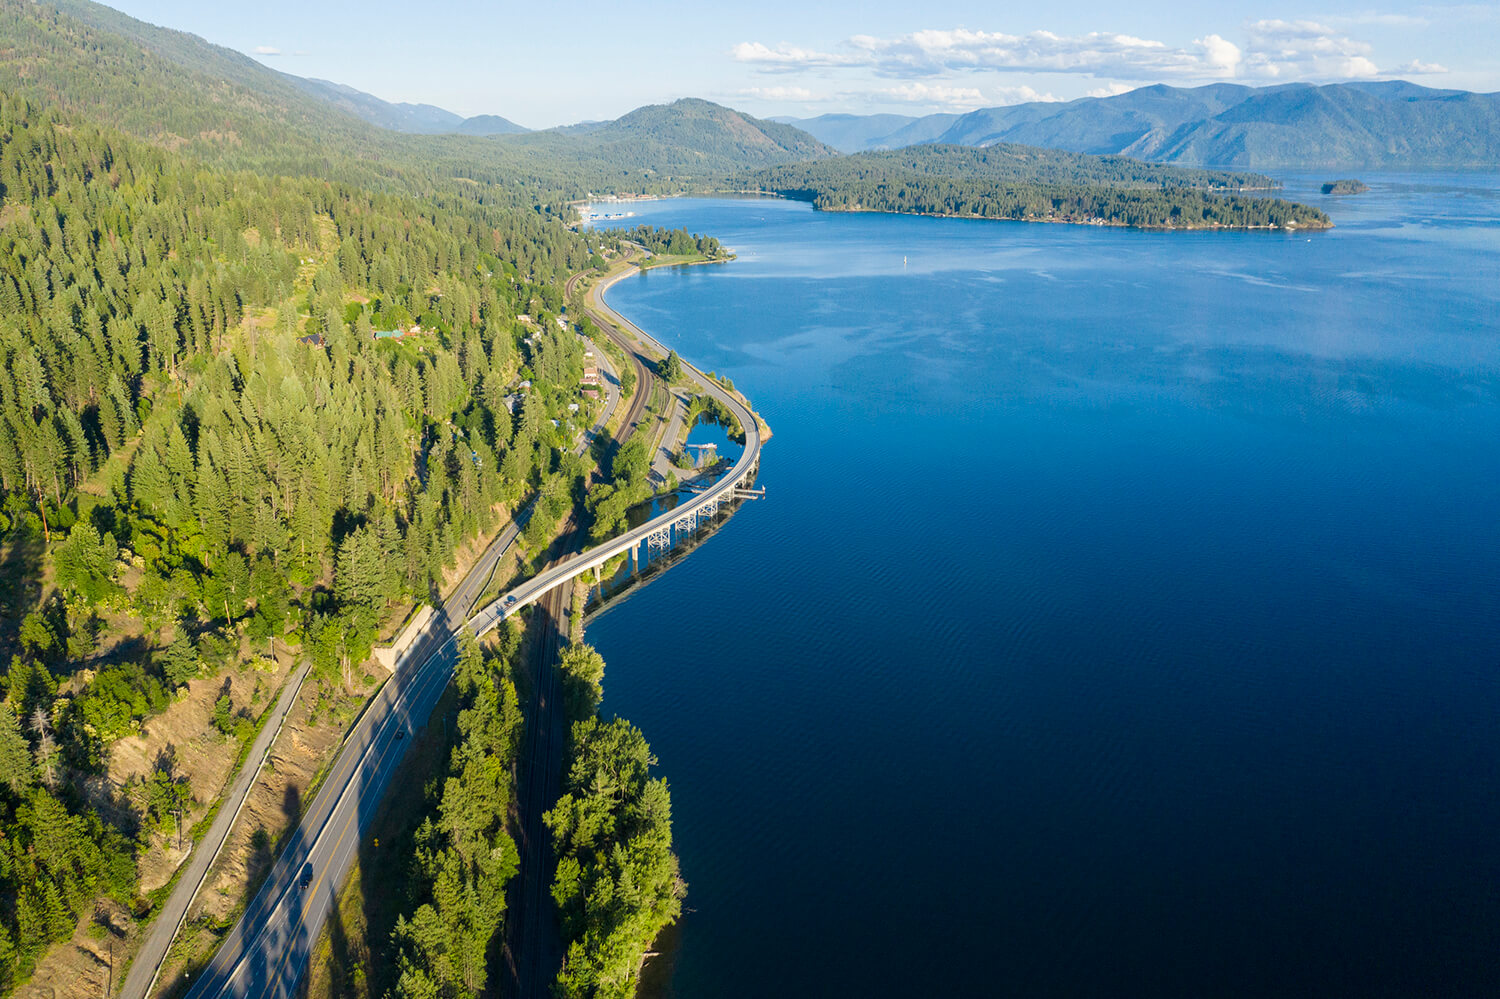 scenic byway curving away from tree-covered mountain and over Lake Pend Oreille